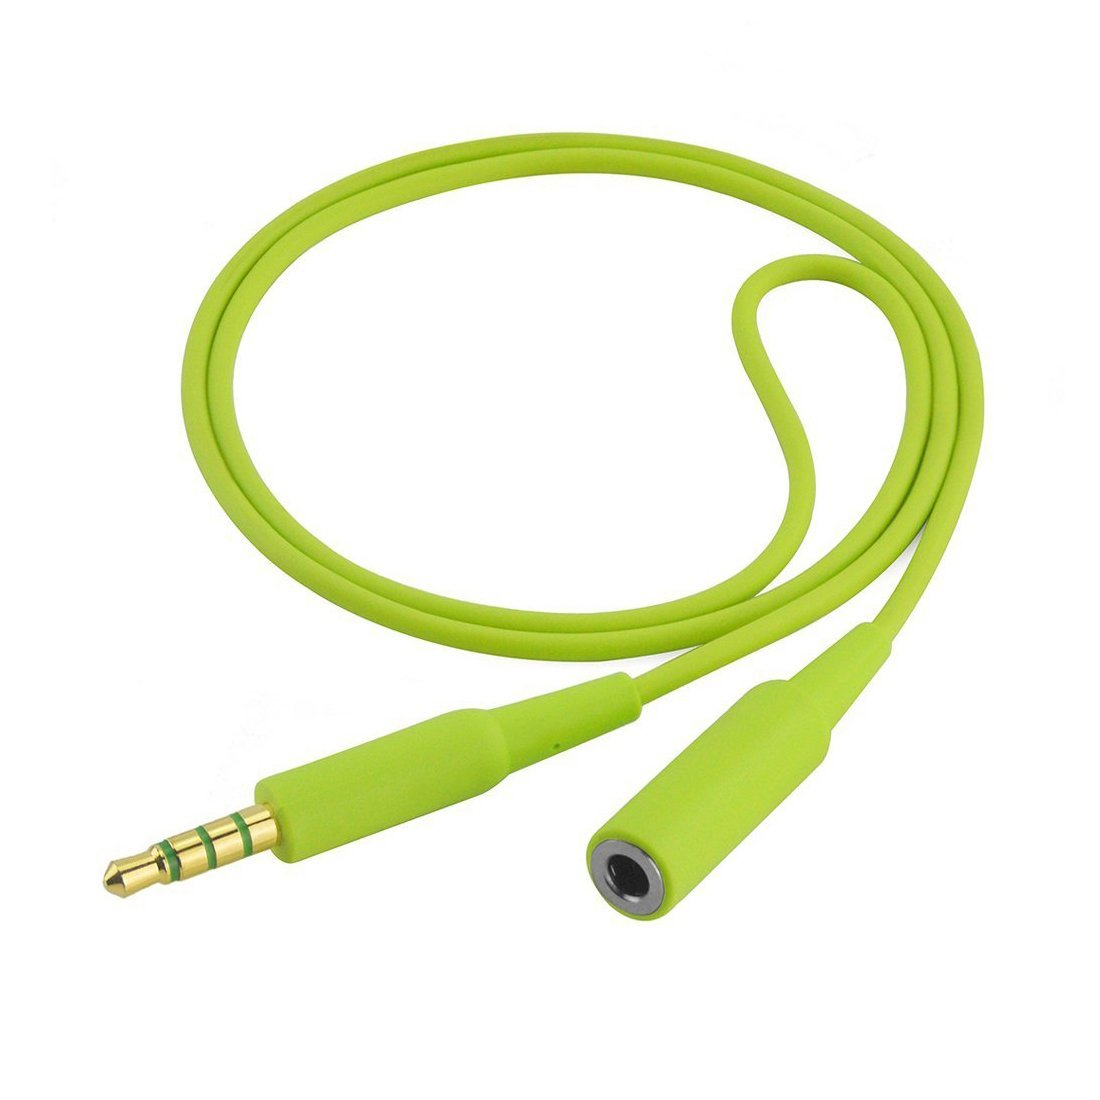 Geekria Extended Cord Bose SoundSport SIE2, SIE2I, Sony MDR-AS20J, AS200, Sennheiser CX380, CX686, Skullcandy Method, Sport Headphones Replacement Extension Cable (Green) EJX36-03